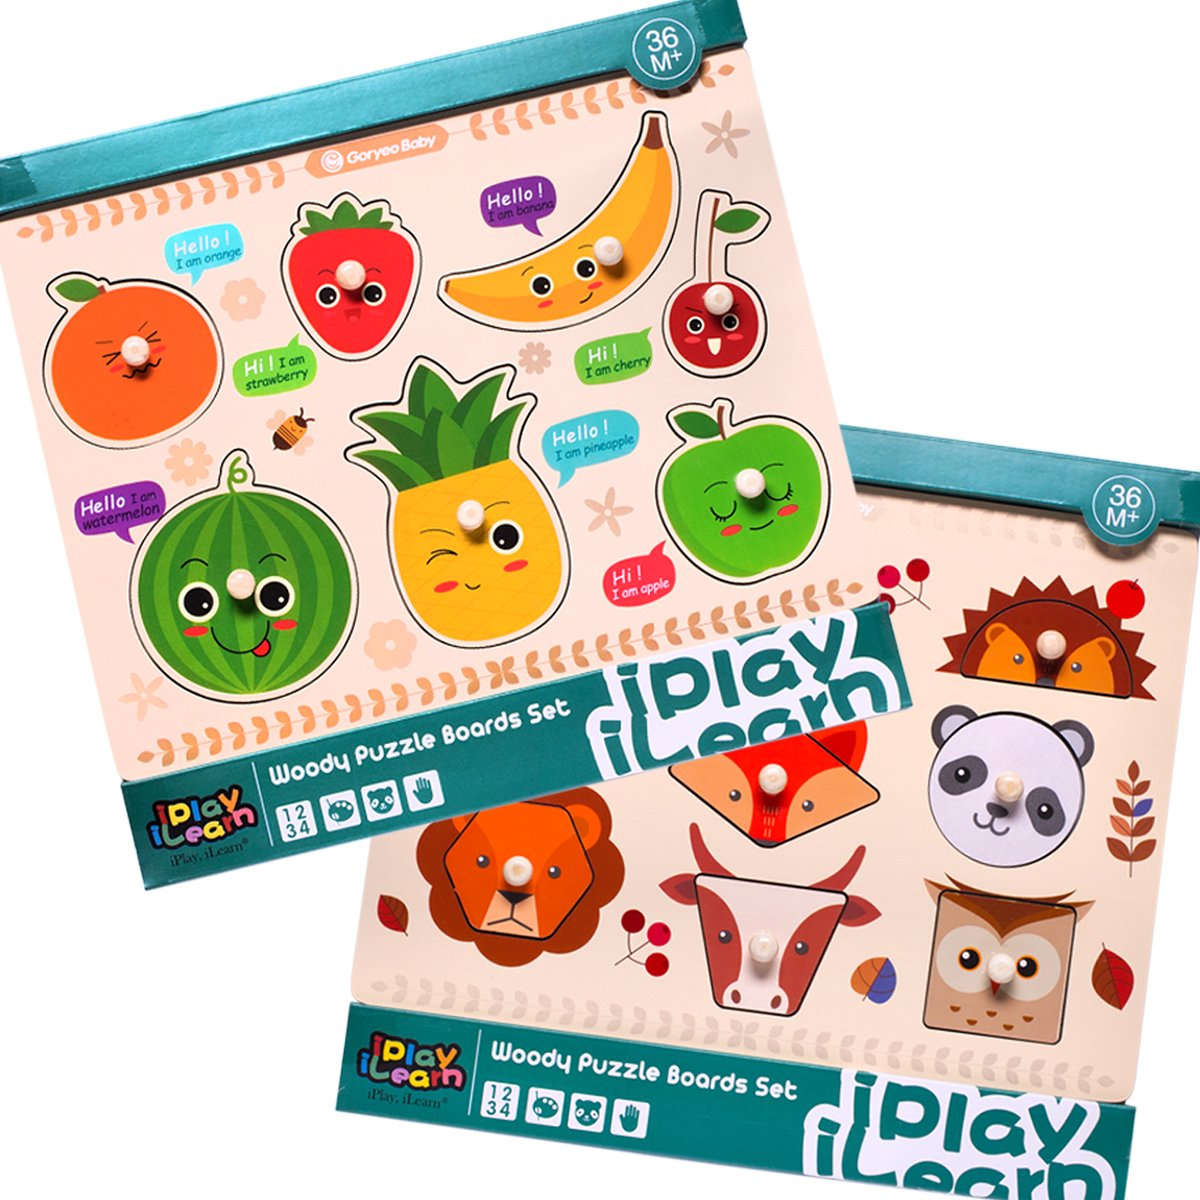 iPlay, iLearn Kids Wooden Peg Puzzles Play Set, Fruit Animals Shapes Knob Board, Learning Jigsaw, Preschool Gift, Educational, Development Toys for 1, 2, 3, 4 Year Olds Toddlers, Baby, Boys, Girls